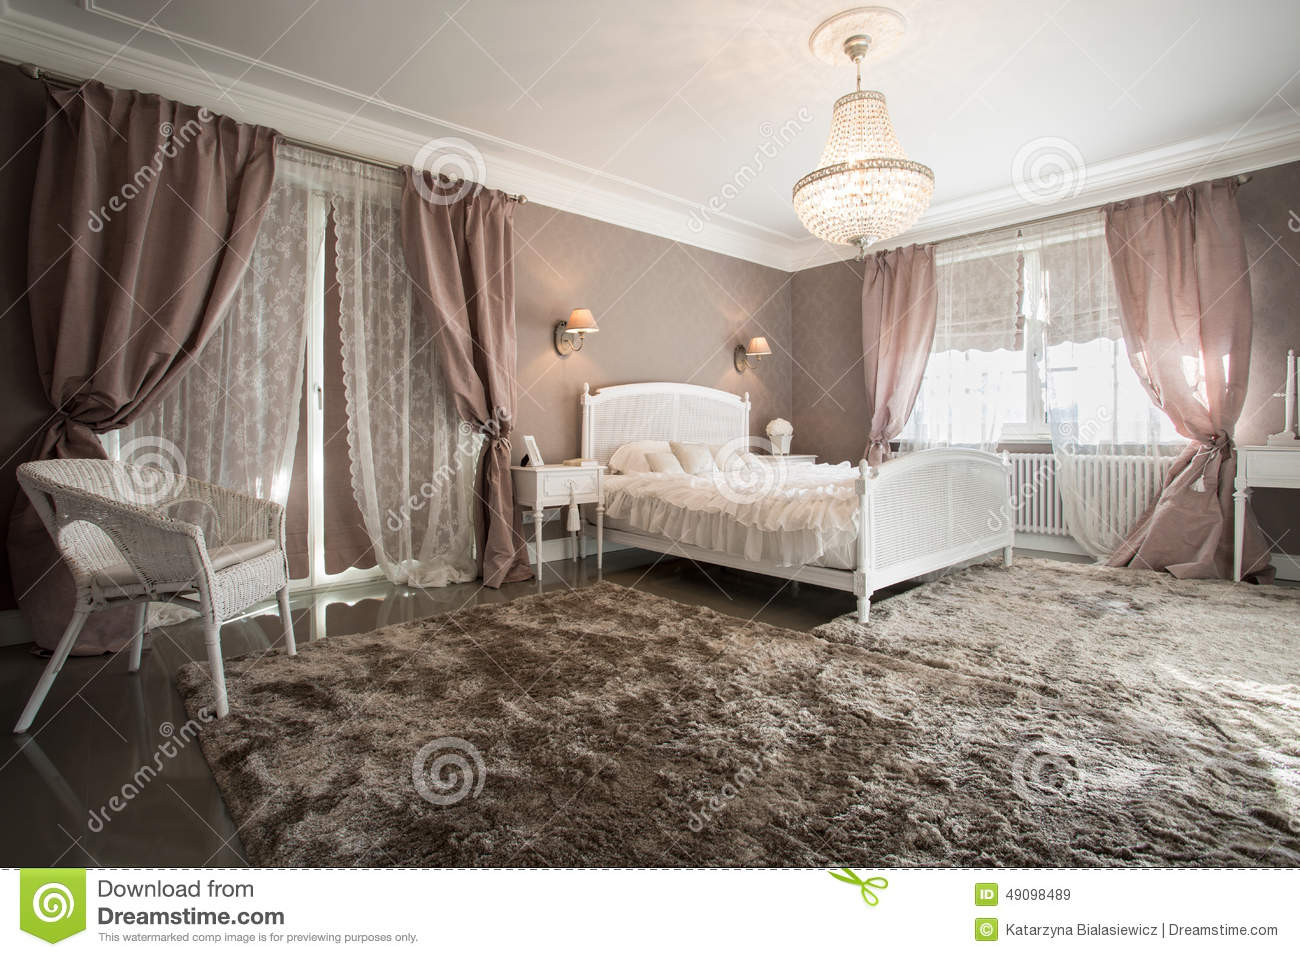 Camera da letto romantica di bellezza fotografia stock immagine 49098489 - Belle chambre romantique ...